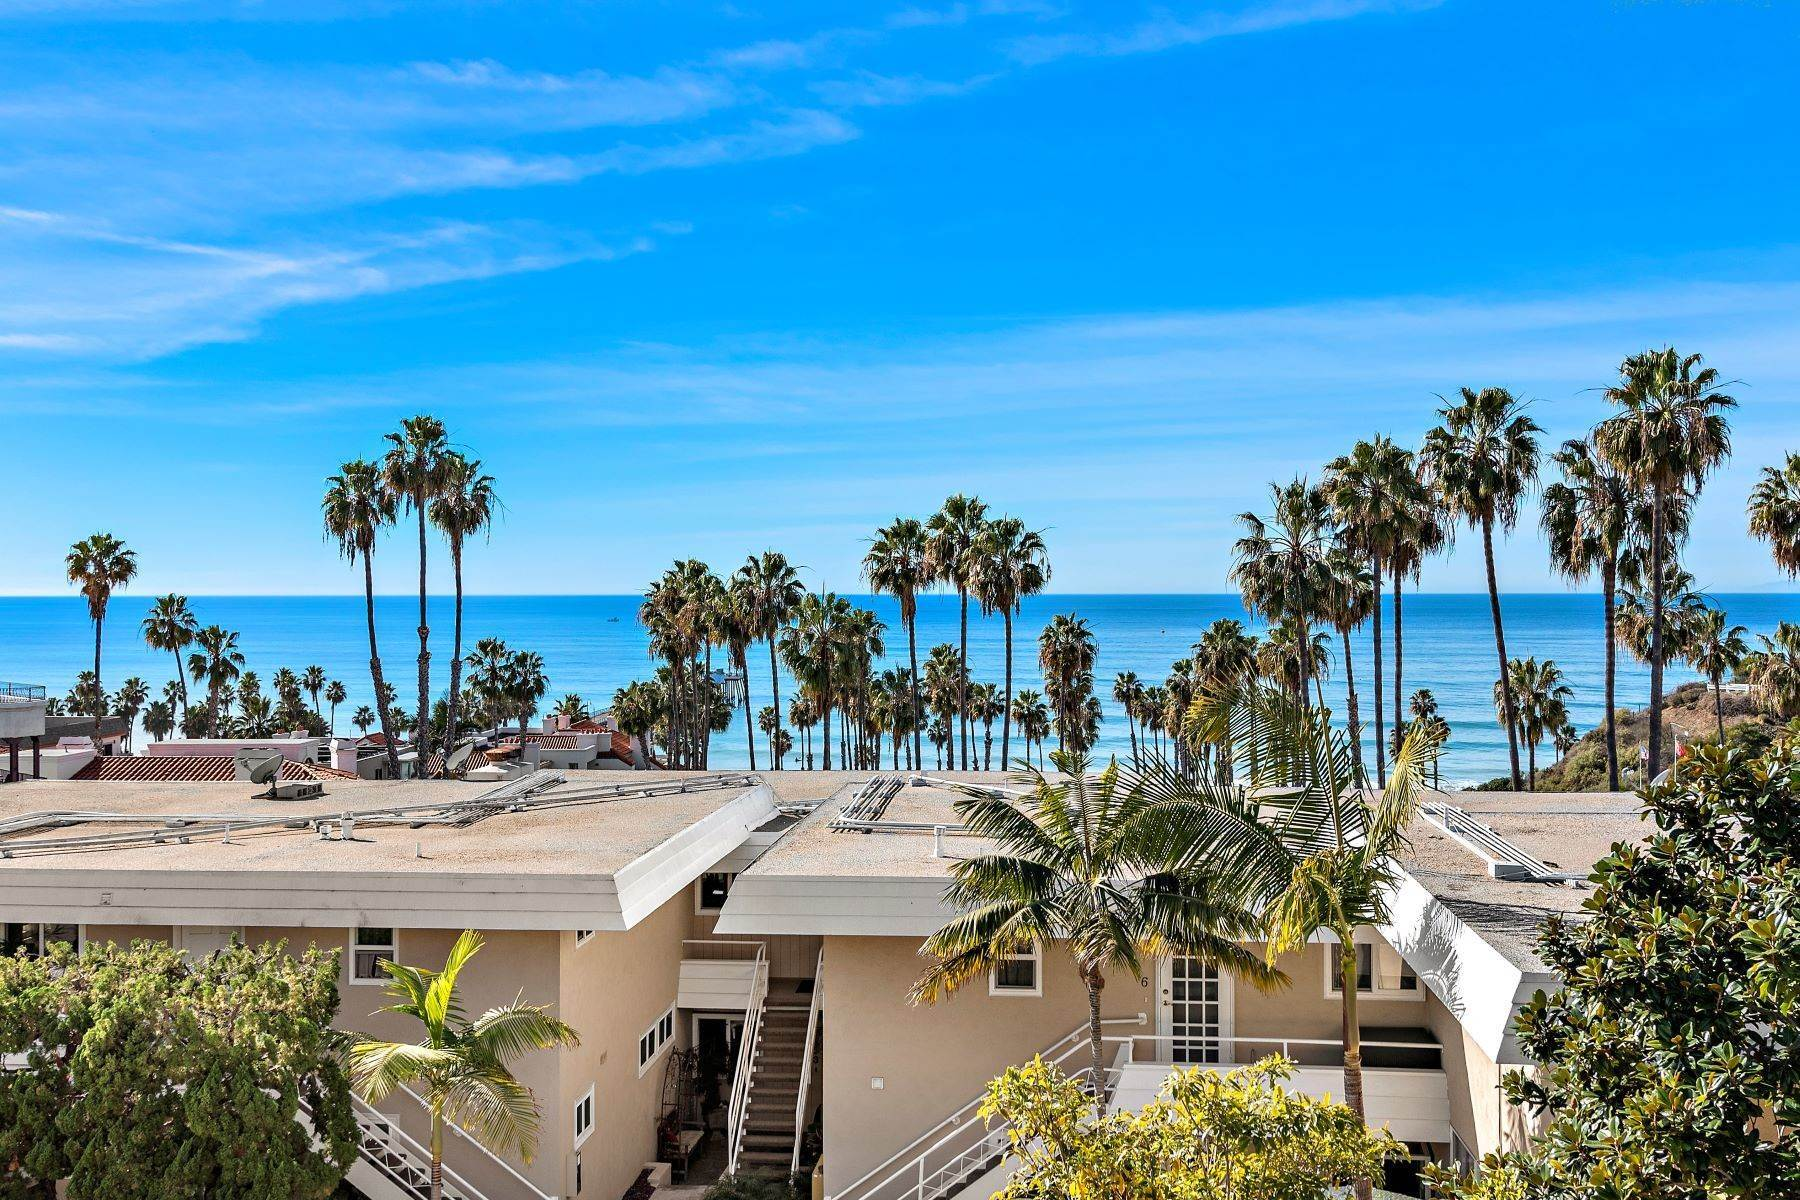 23. Condominiums for Sale at 321 Acebo Lane Unit #C, San Clemente, CA 92672 321 Acebo Lane, Unit #C San Clemente, California 92672 United States